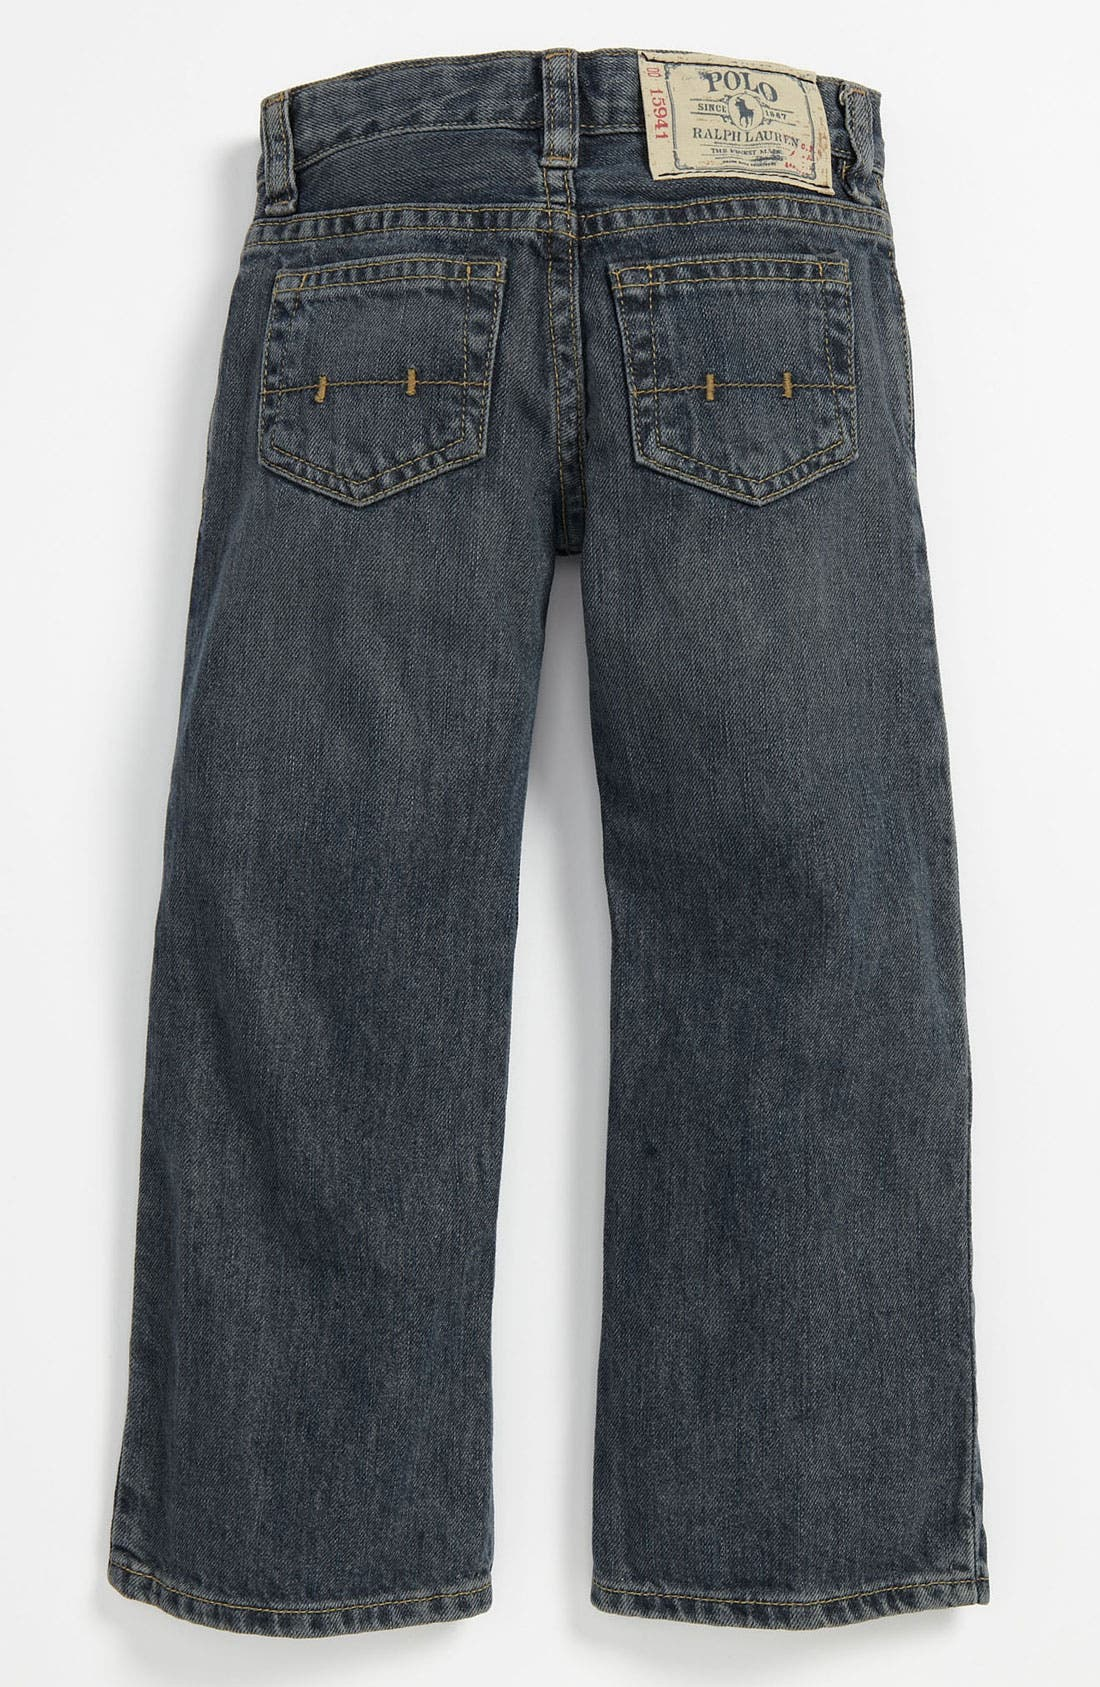 Alternate Image 1 Selected - Ralph Lauren Straight Leg Jeans (Toddler)